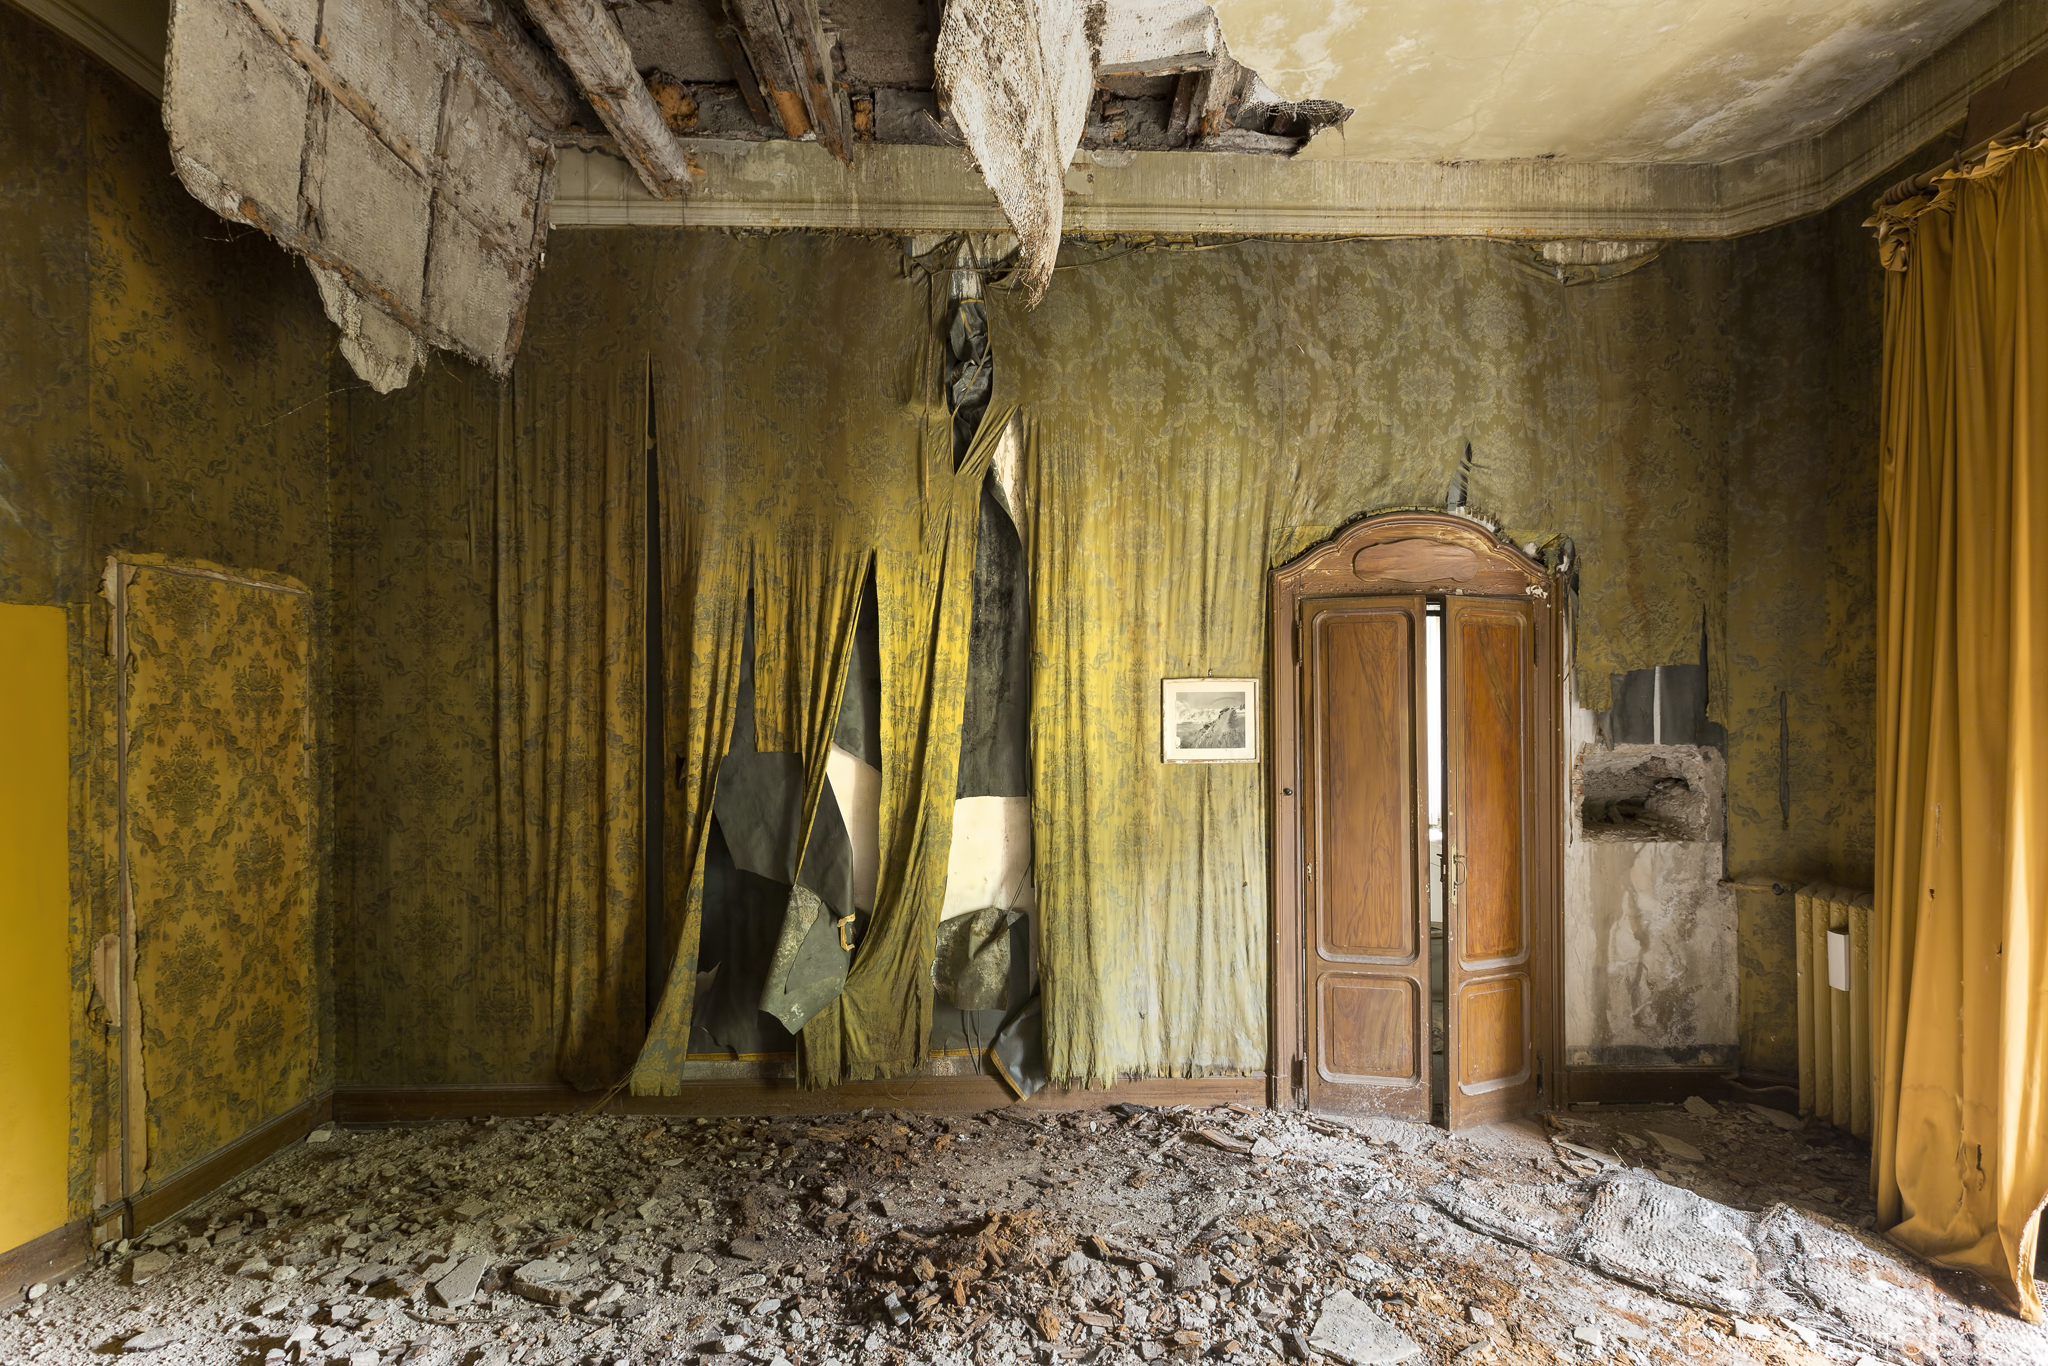 Peeling Paint Wallpaper grand opulent decay Villa Pesenti P Urbex Adam X Urban Exploration Italy Italia Access 2016 Abandoned decay lost forgotten derelict location creepy haunting eerie